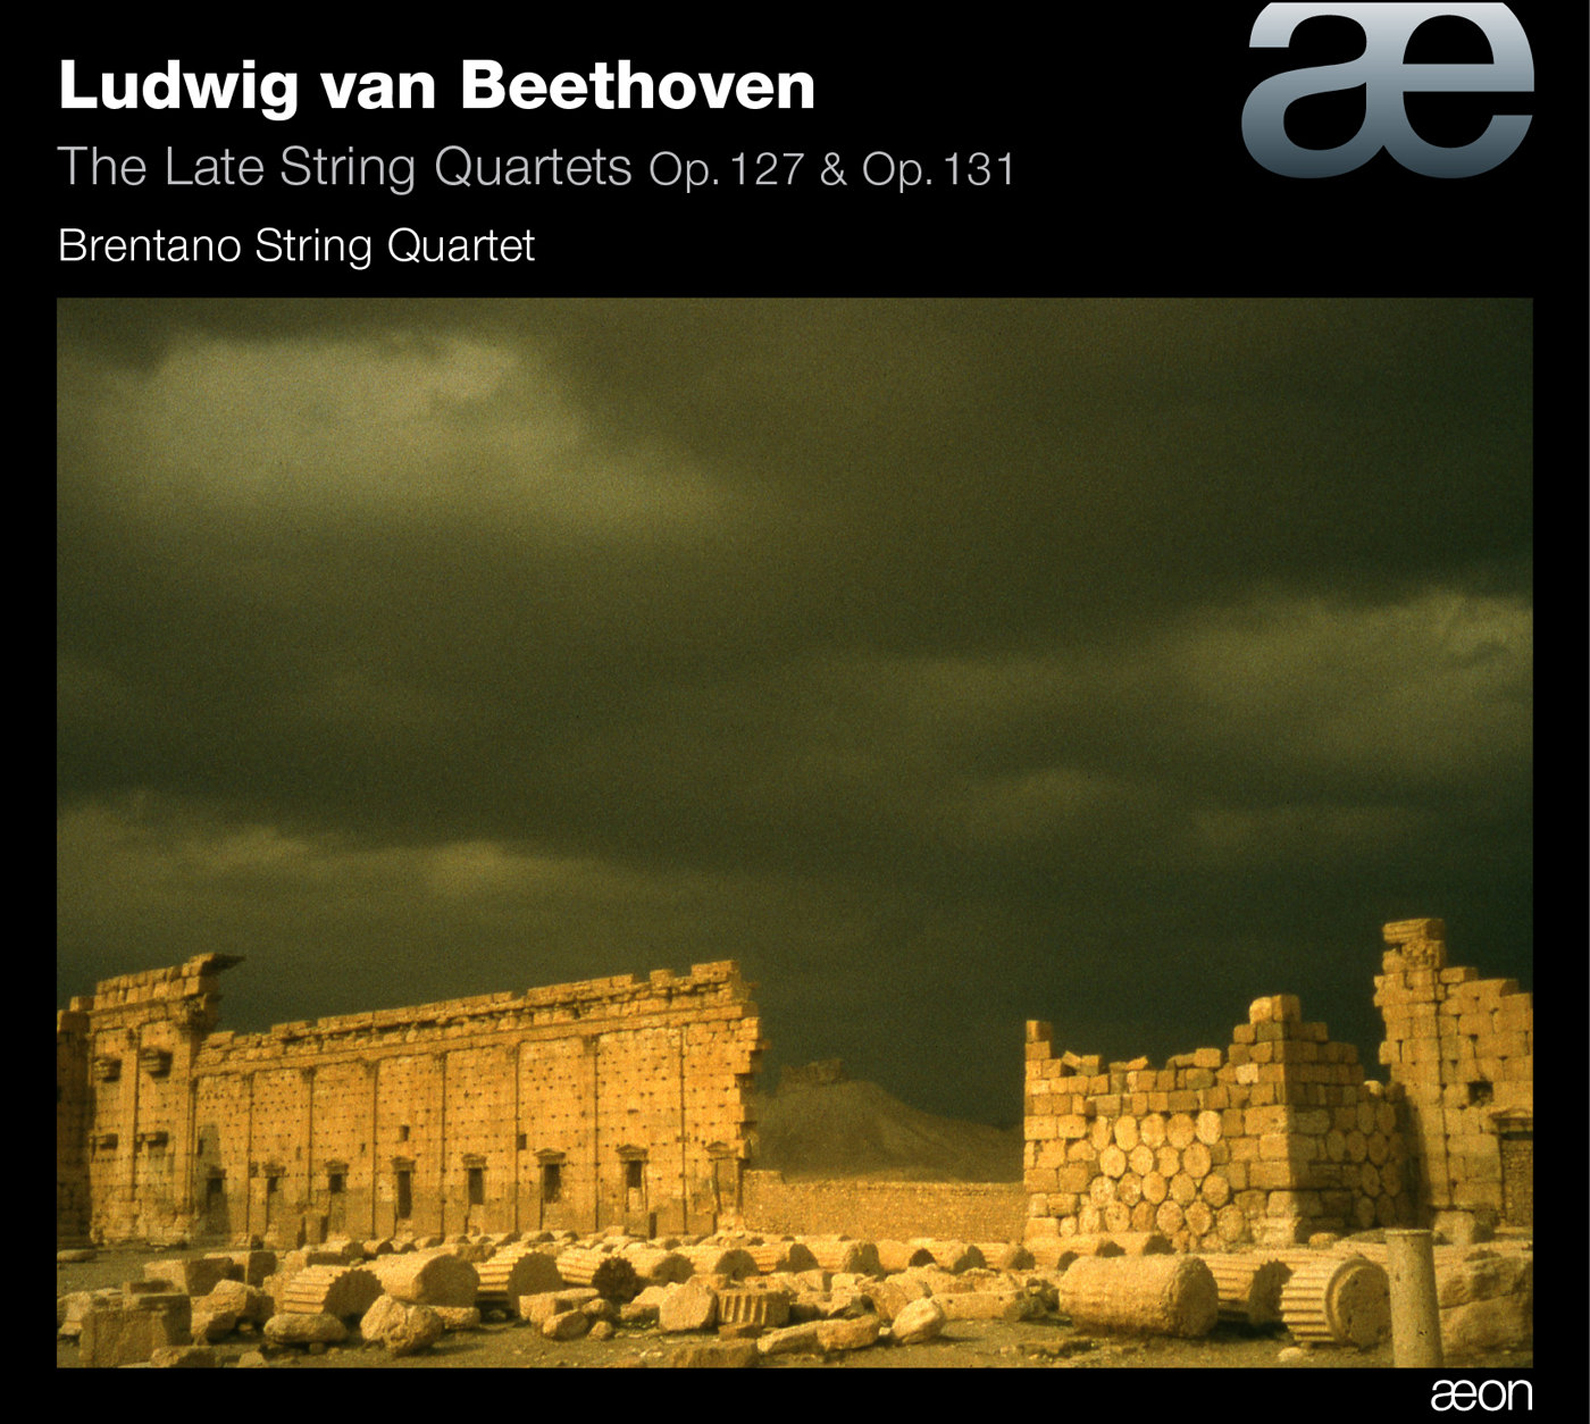 String Quartet No. 14 in C-Sharp Minor, Op. 131, String Quartet No. 14 in C-Sharp Minor, Op. 131: VI. Adagio quasi un poco andante -